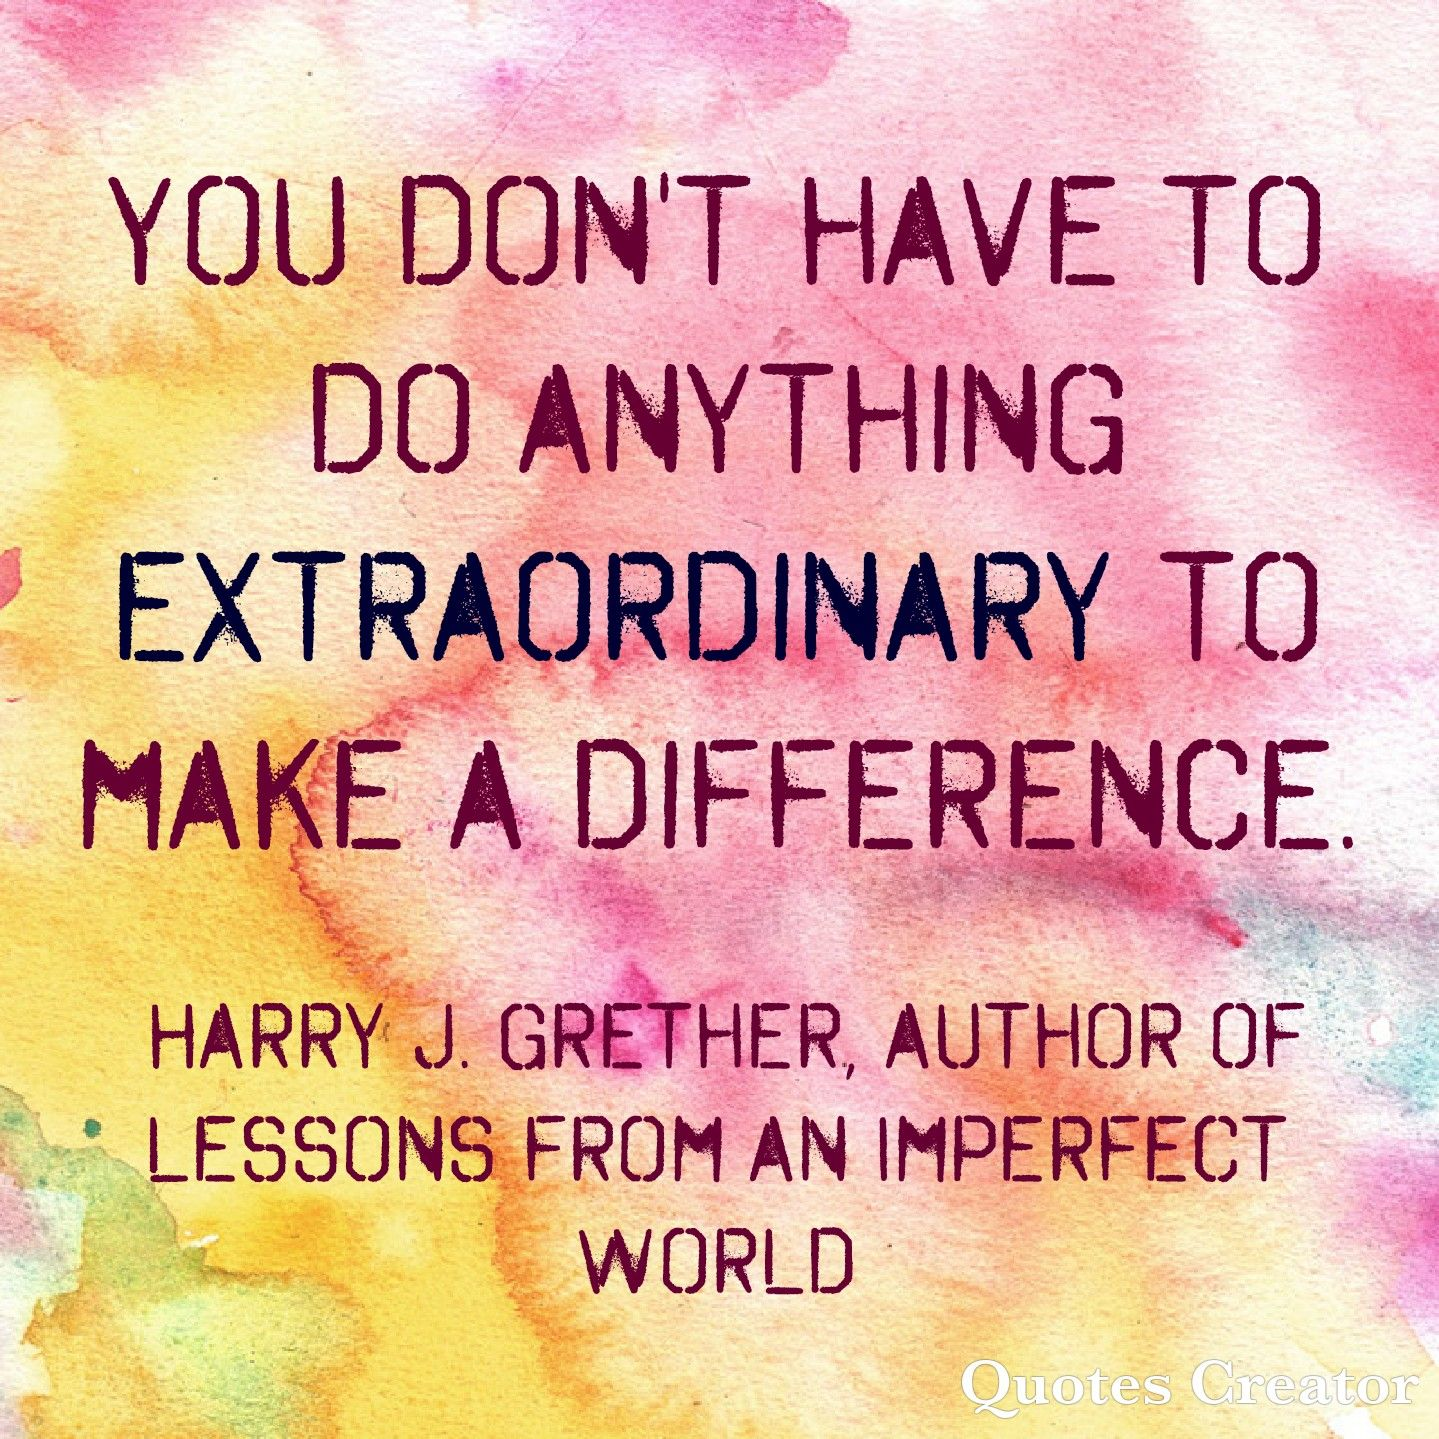 Make A Difference Quotes Don't Be Afraid To Make A Difference Quotes To Inspire Lessons .